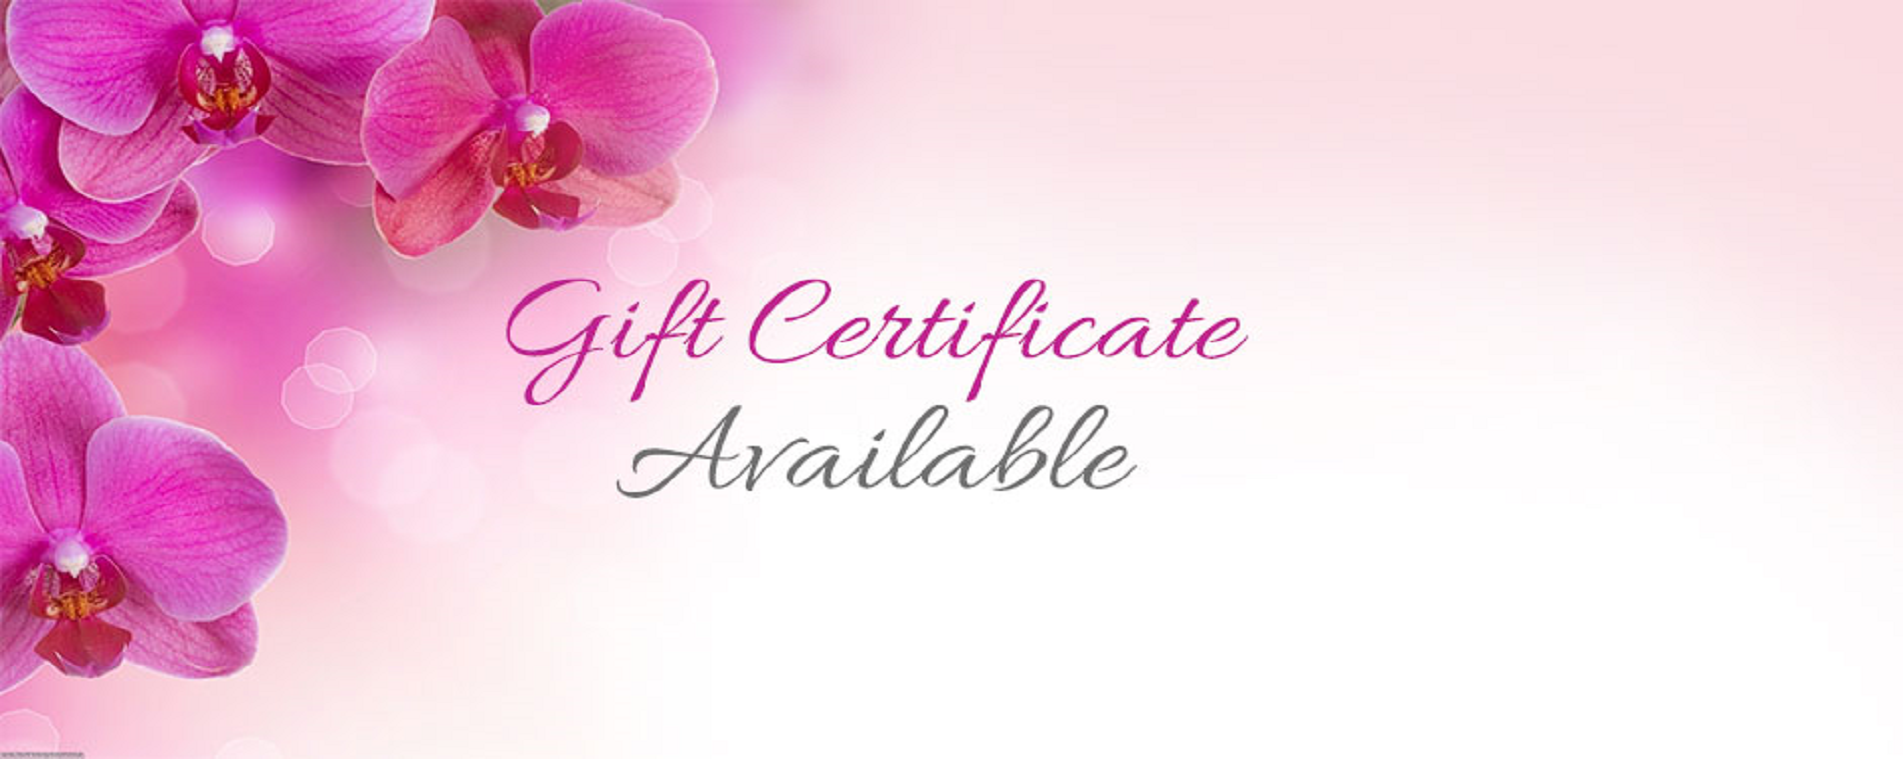 Nail salon gift certificate template cblconsultics giftcertificates4u com nail salon gift certificate template hair salon gift certificate templates canva nail gift certificate template free lamoureph blog yelopaper Images